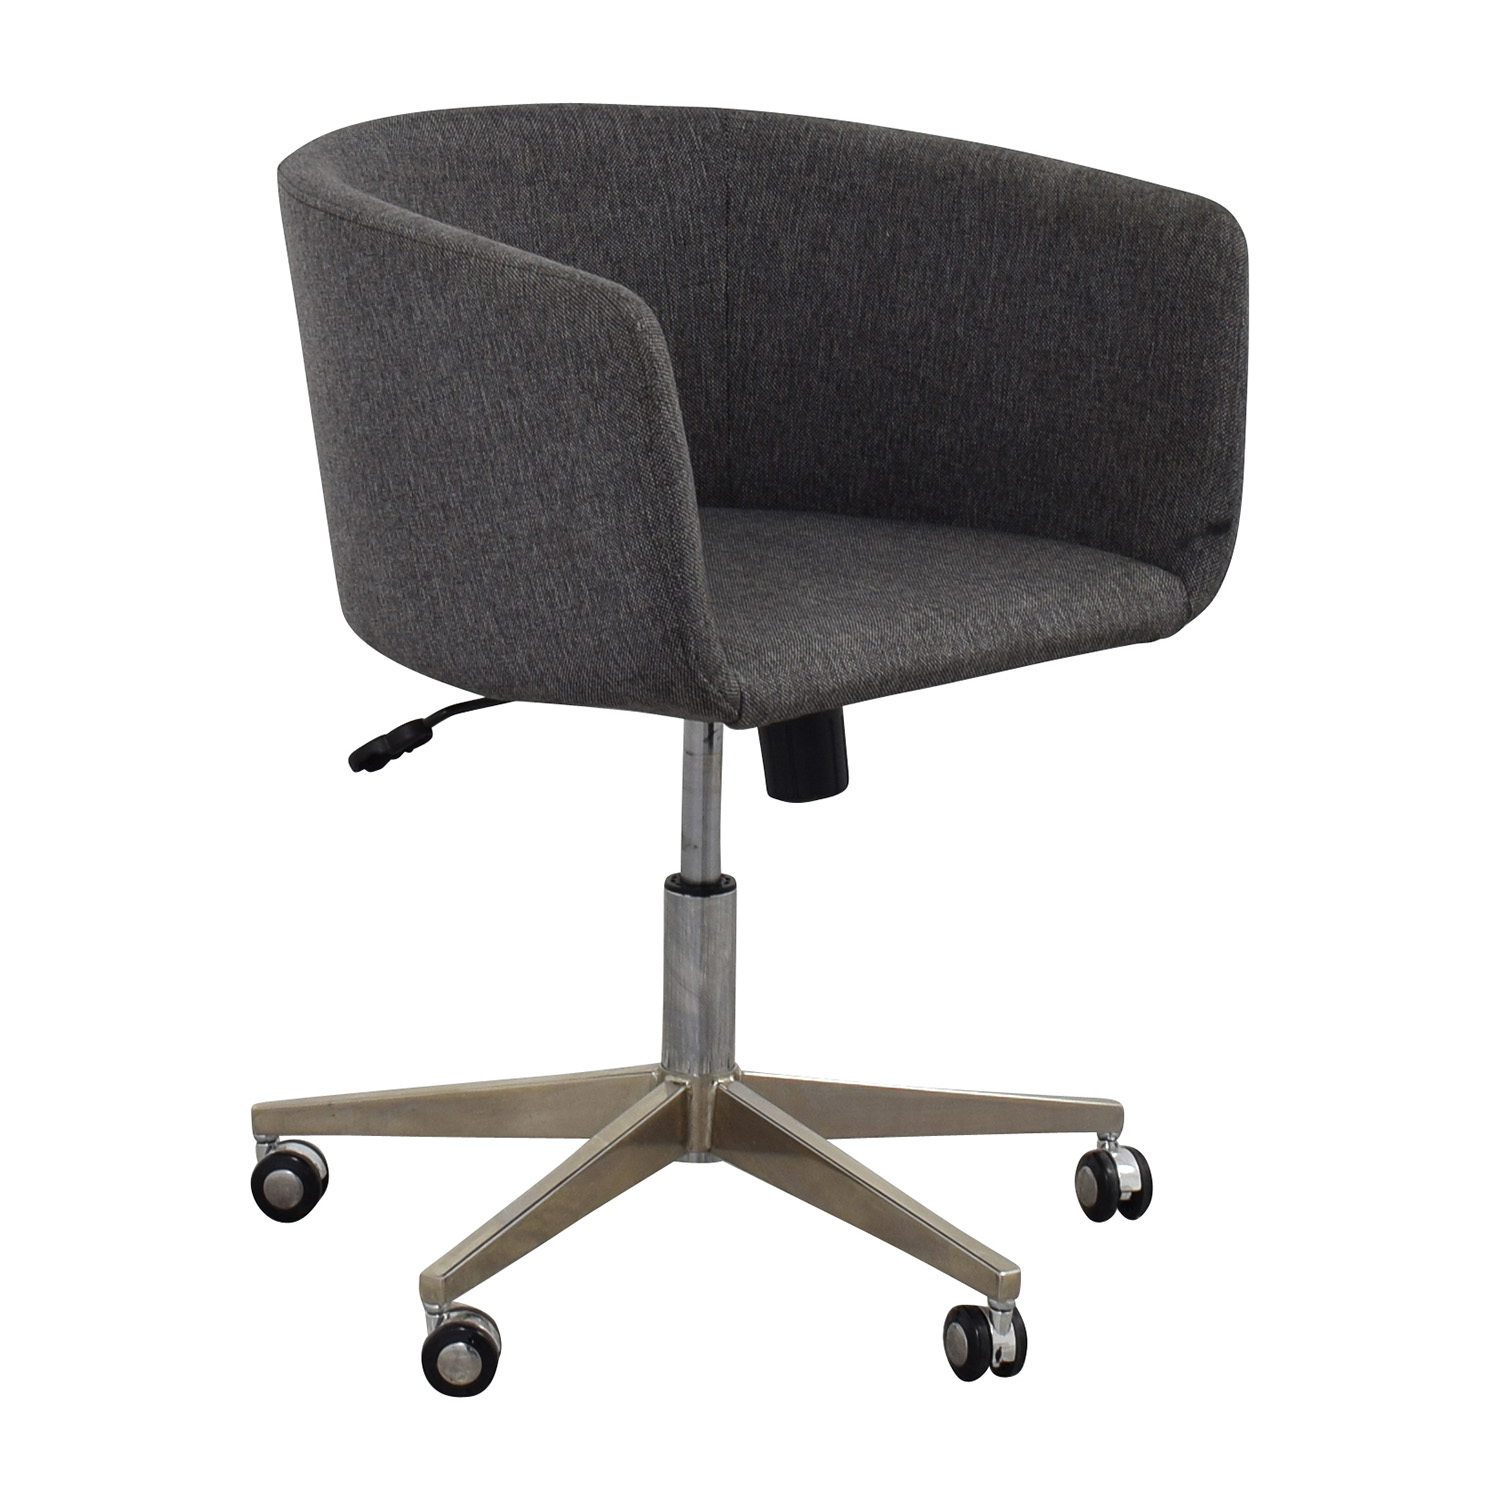 80 off modern grey office chair with chrome wheels chairs. Black Bedroom Furniture Sets. Home Design Ideas